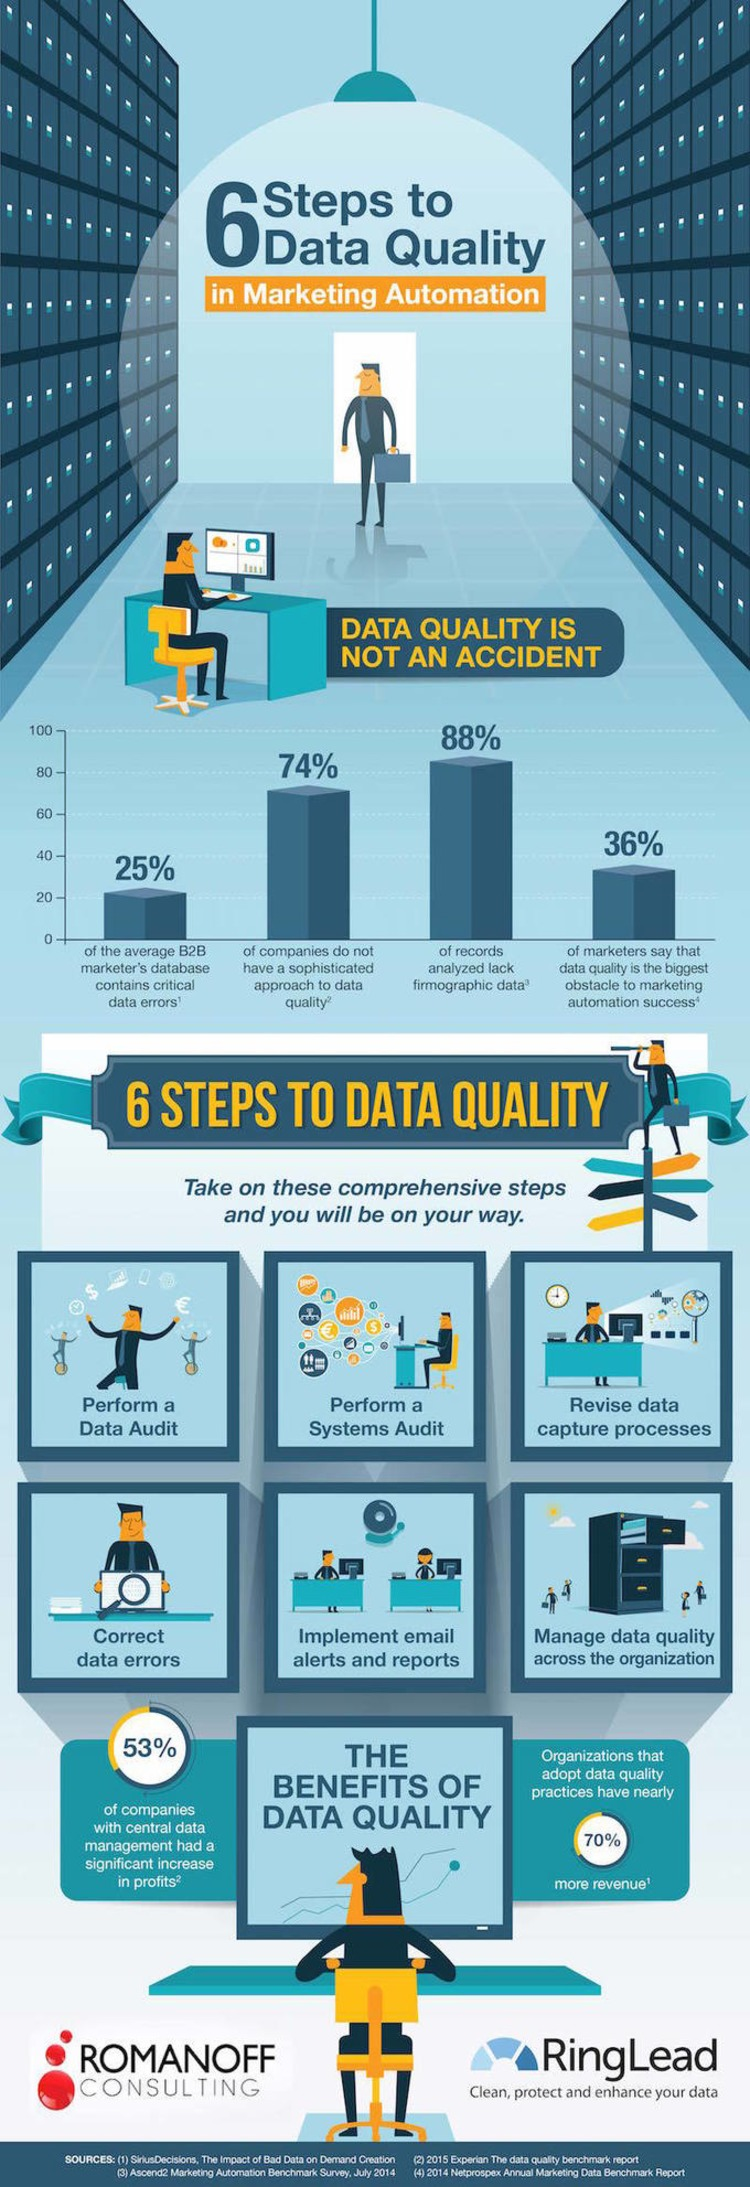 6 Steps to Data Quality in Marketing Automation - Visual Contenting | The Marketing Technology Alert | Scoop.it